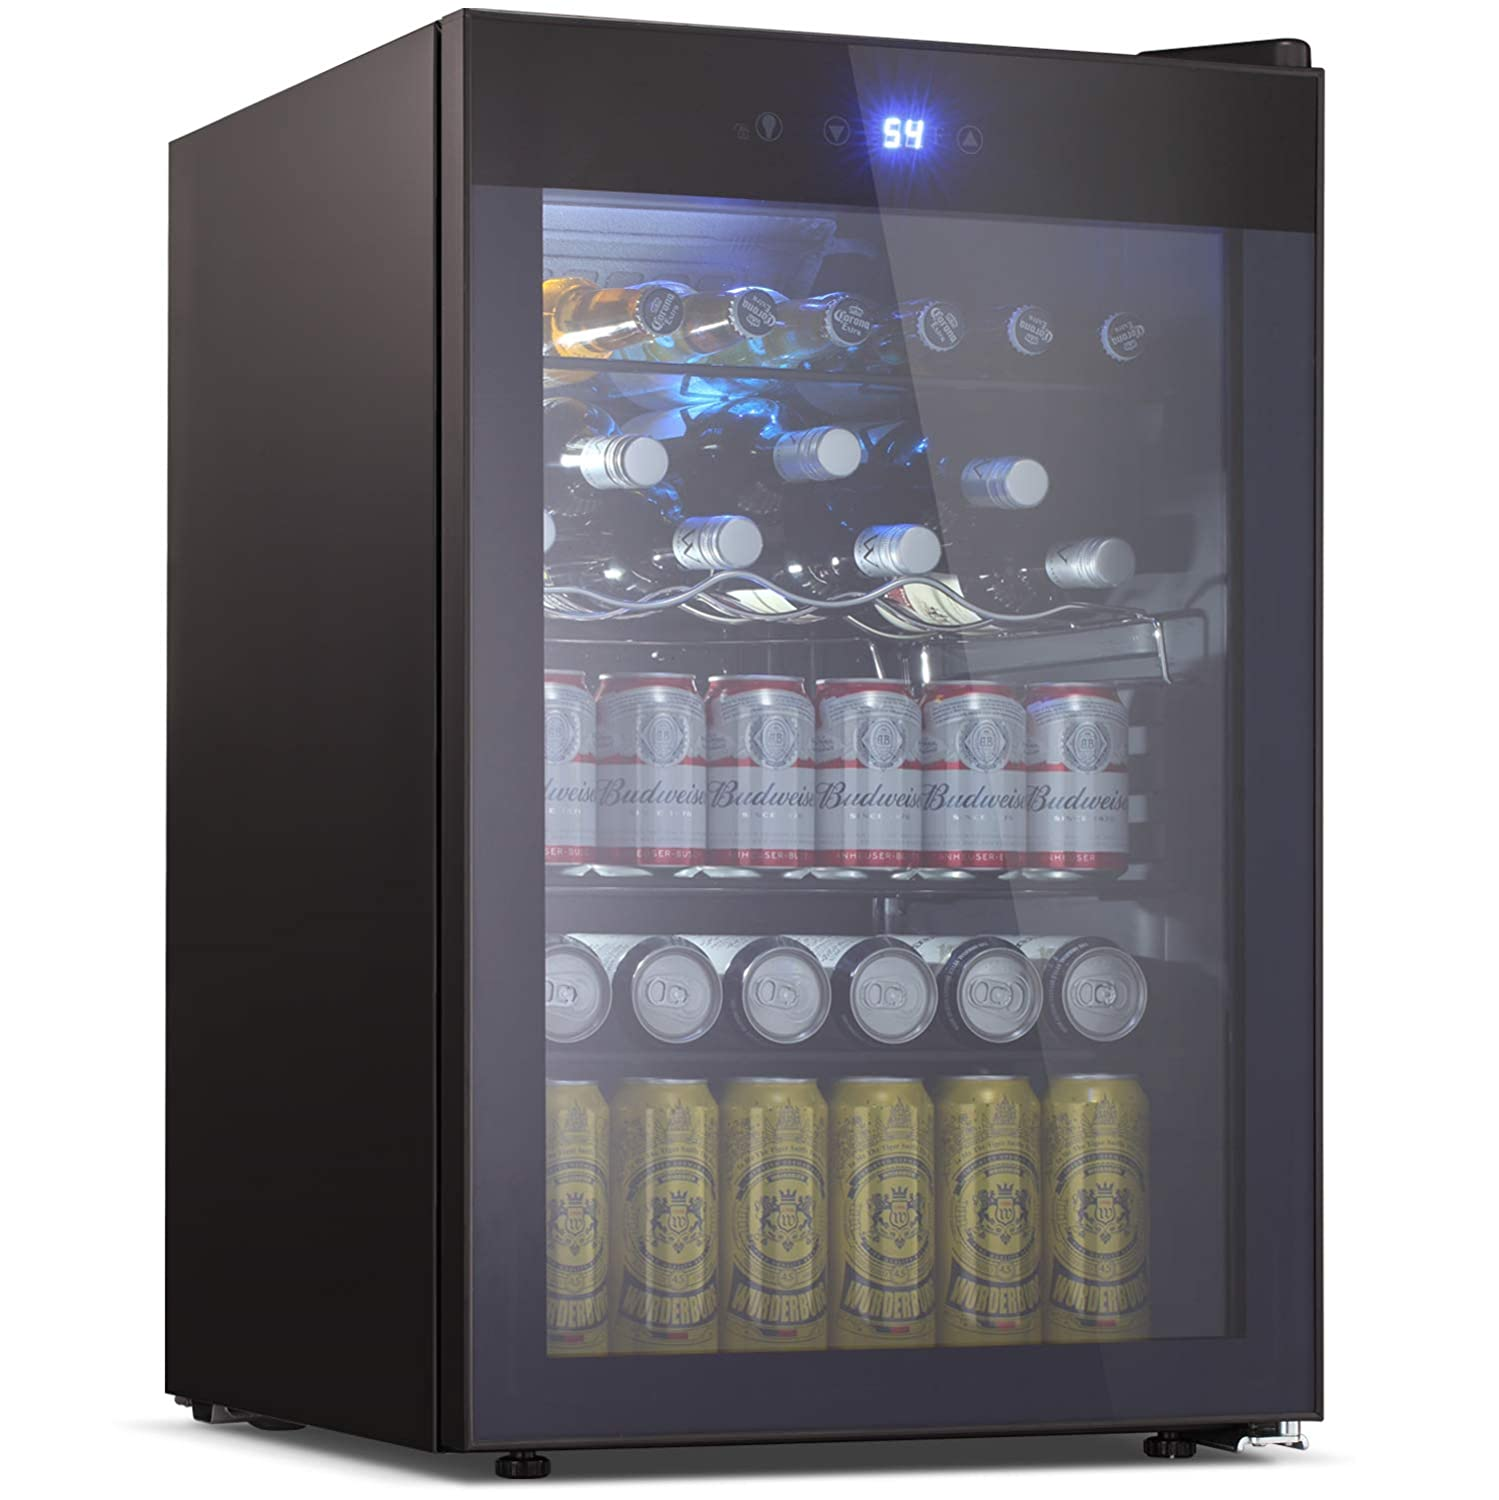 Tavata Beverage Refrigerator and Cooler - 4.5 Cu. Ft. Drink Fridge with Glass Door for Soda, Beer or Wine - Small Beverage Center with 5 Removable Shelves for Office/Man Cave/Basements/Home Bar (4.5 Cu.Ft)